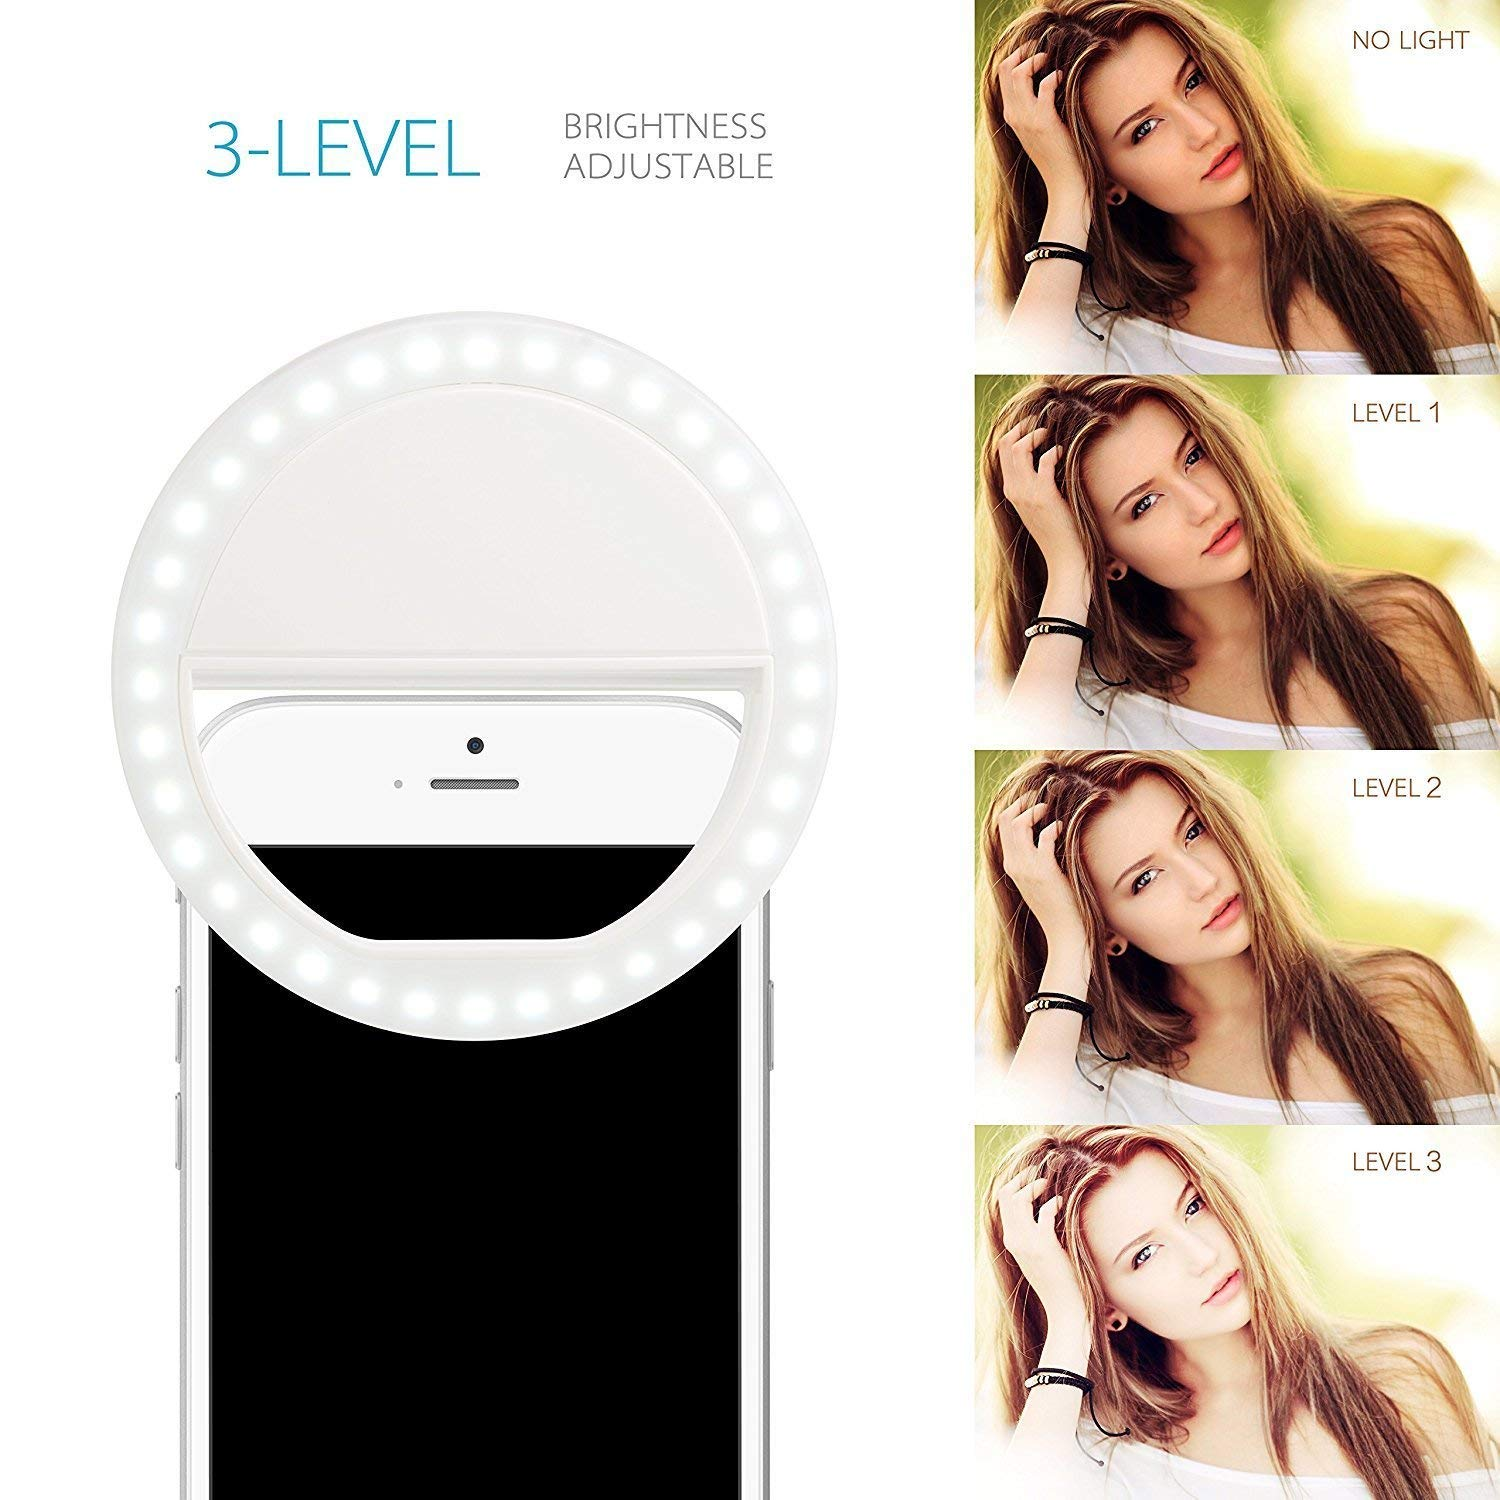 Selfie ring light, clip-on camera light, rechargeable, 36 LEDs, 3 different brightness levels, photography video light night light for iPhone, Samsung and other smartphones and tablets